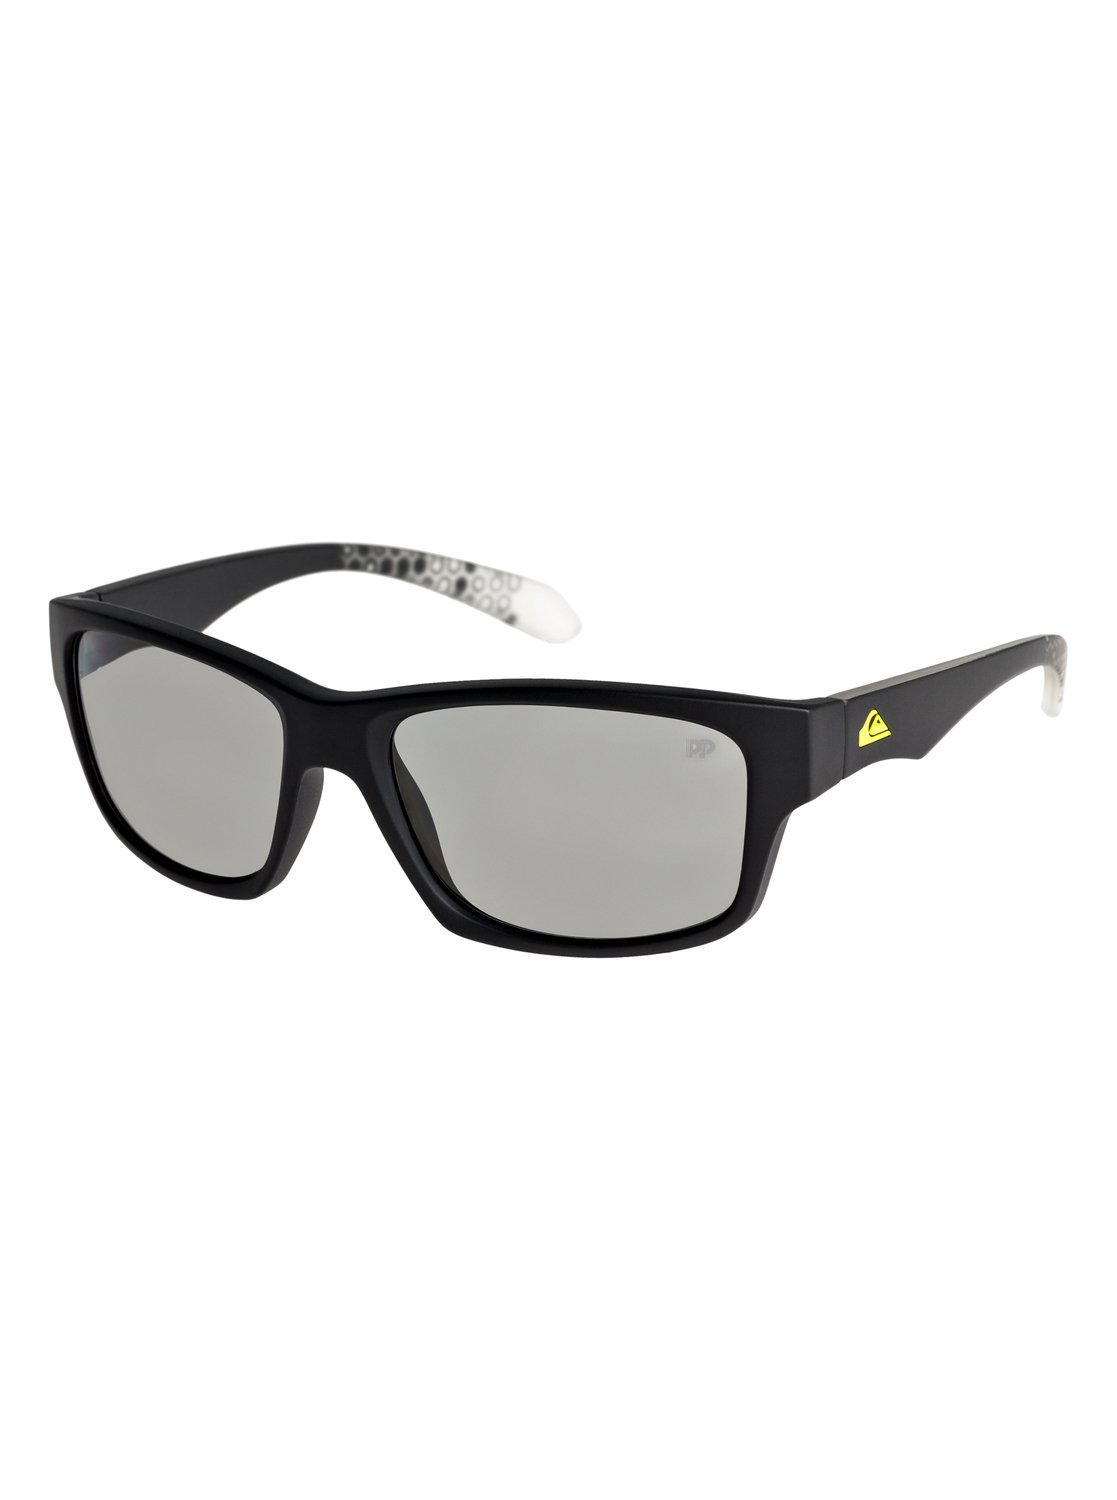 Off Road - Polarized Sunglasses